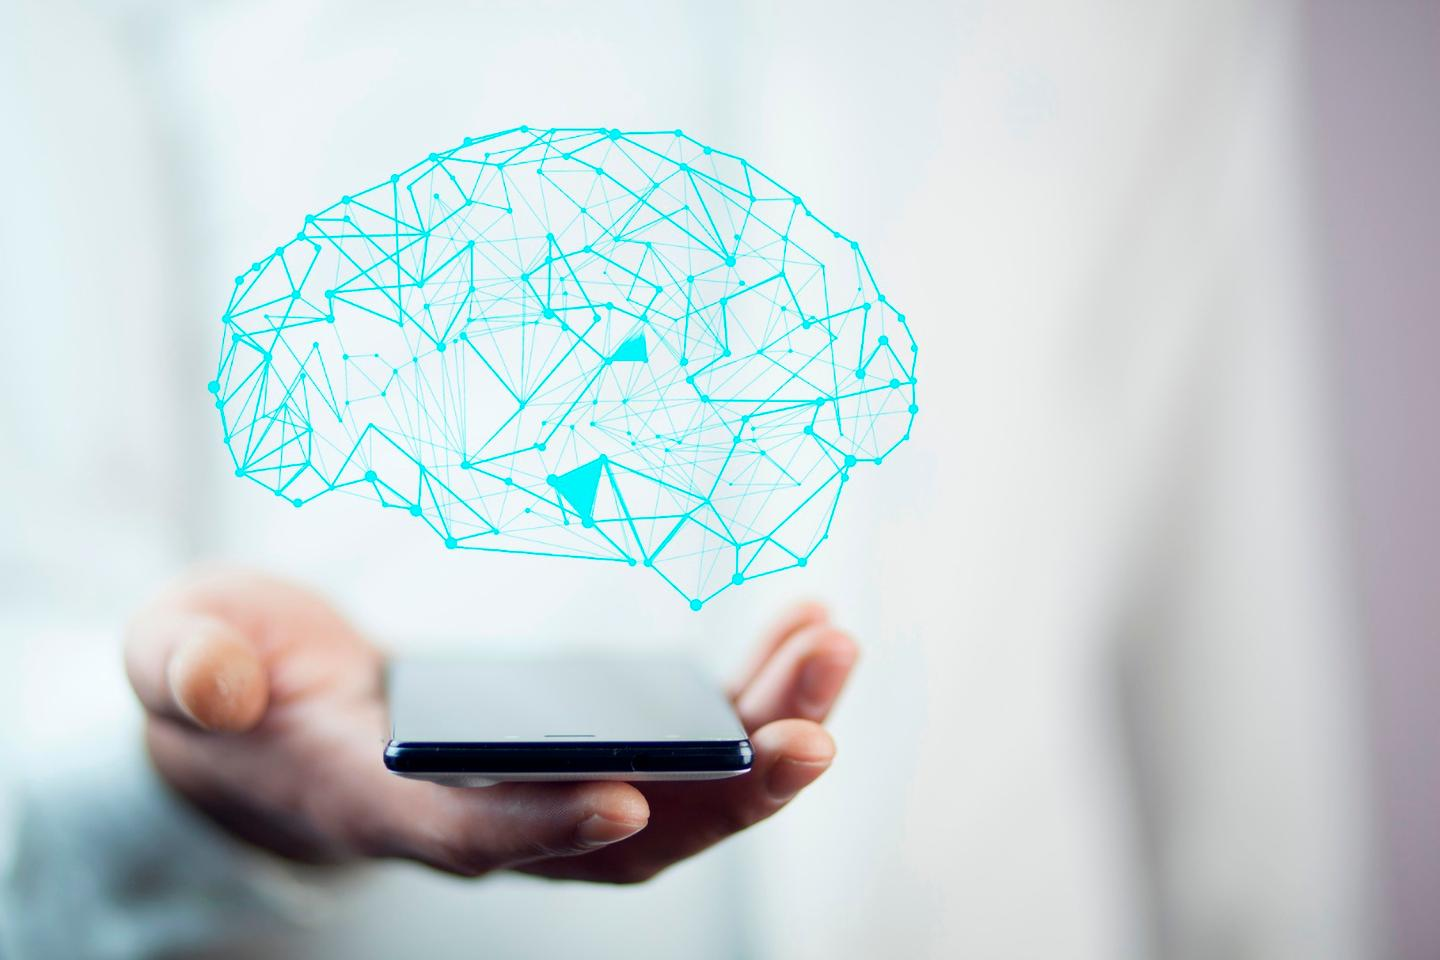 A new test, that could be administered on a smartphone or laptop, could offer accurate early diagnosis of mild cognitive impairment